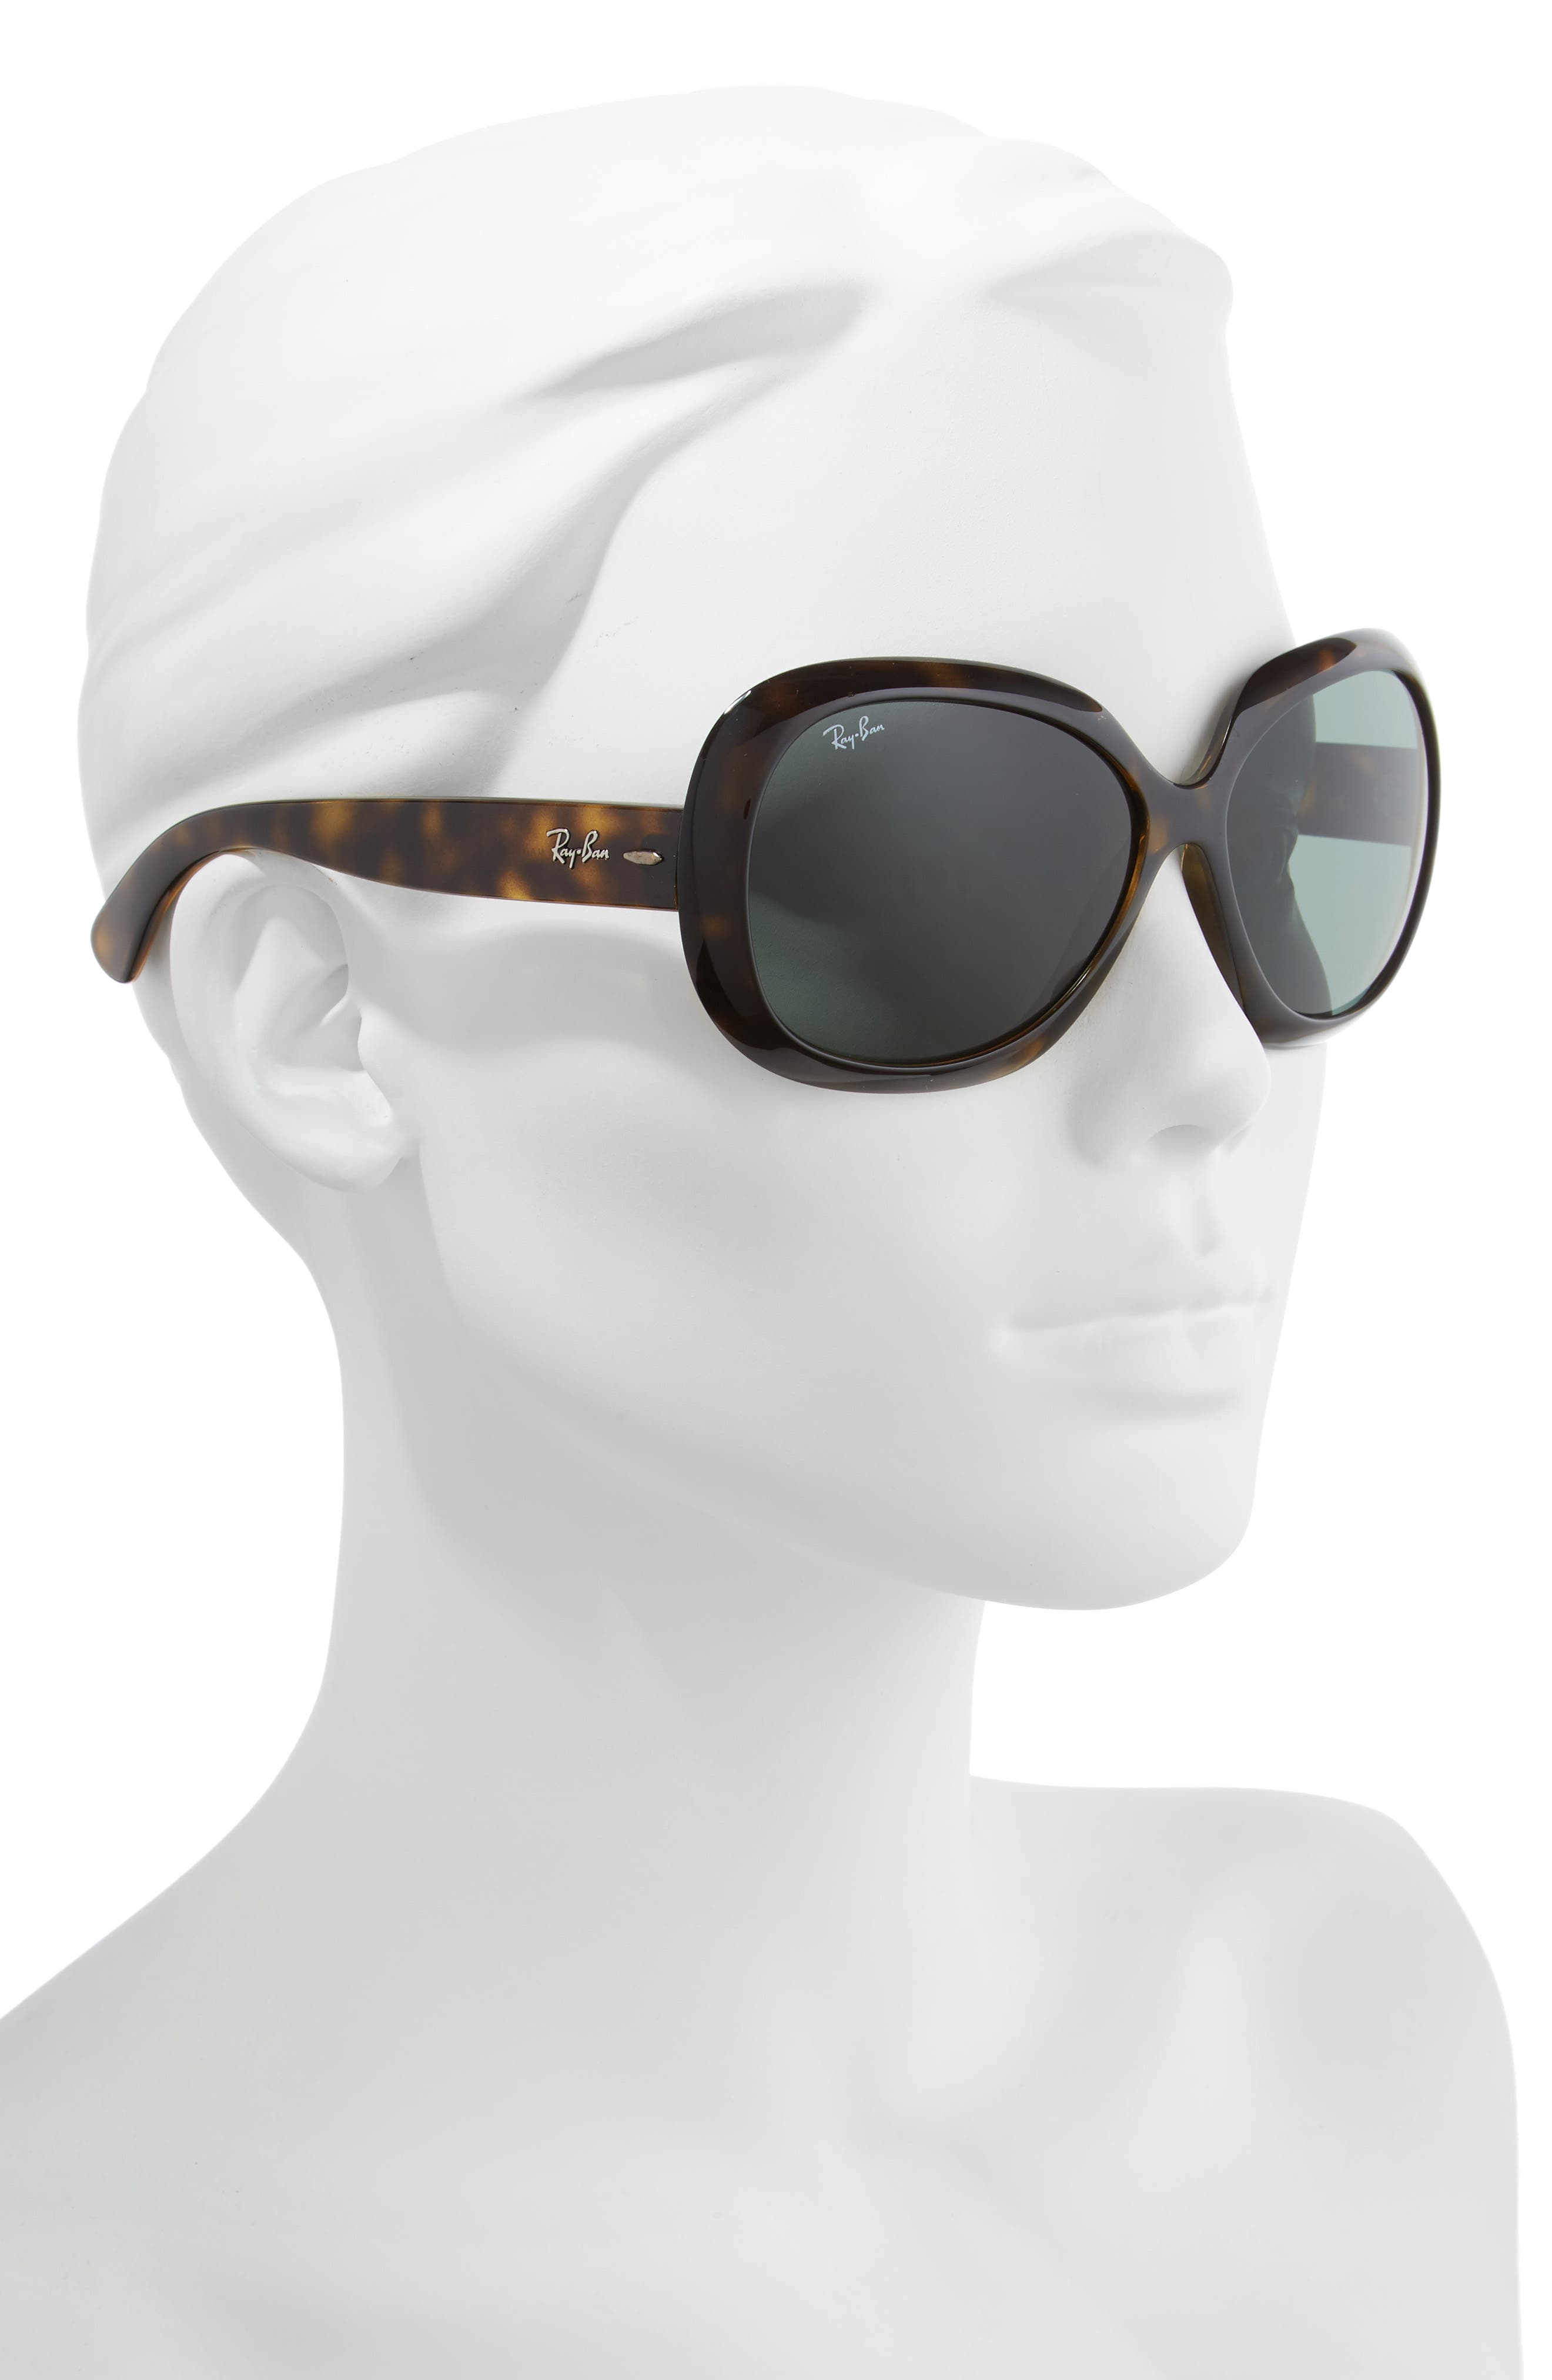 5a1d007470 Ray-Ban Sunglasses for Women